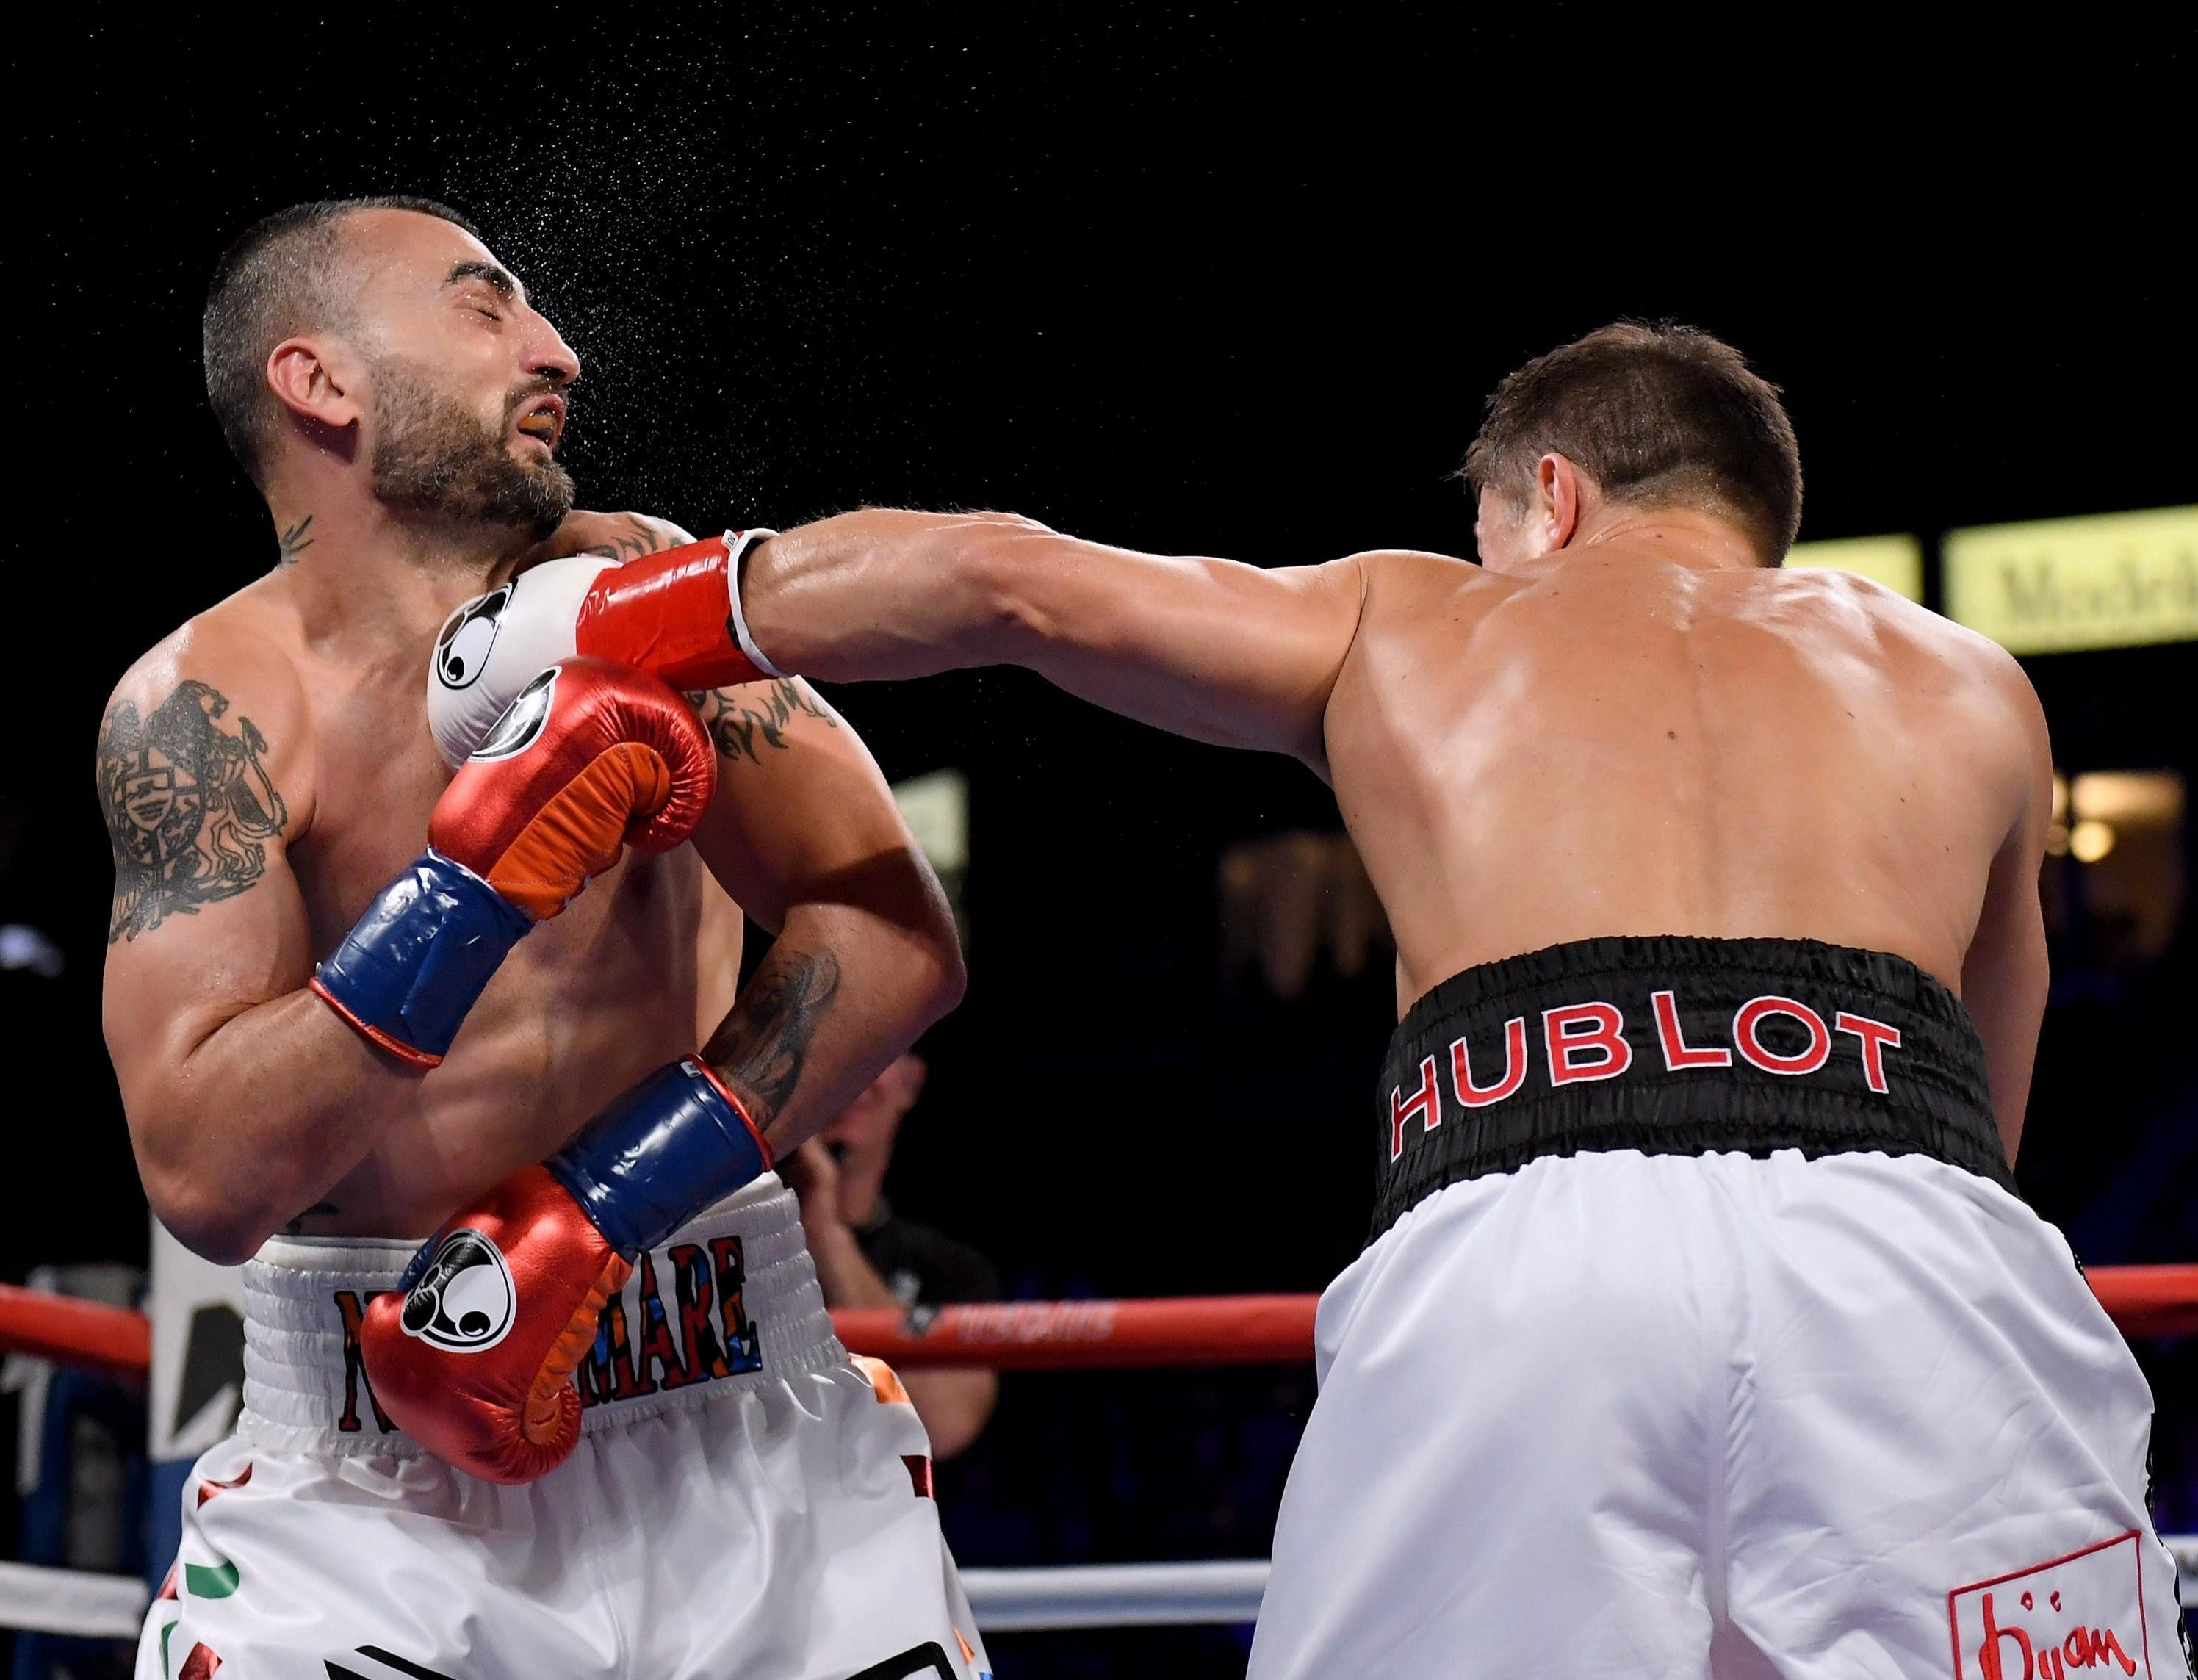 Gennady Golovkin destroyed Vanes Martirosyan in two rounds after his May fight with Canelo Alvarez was called off